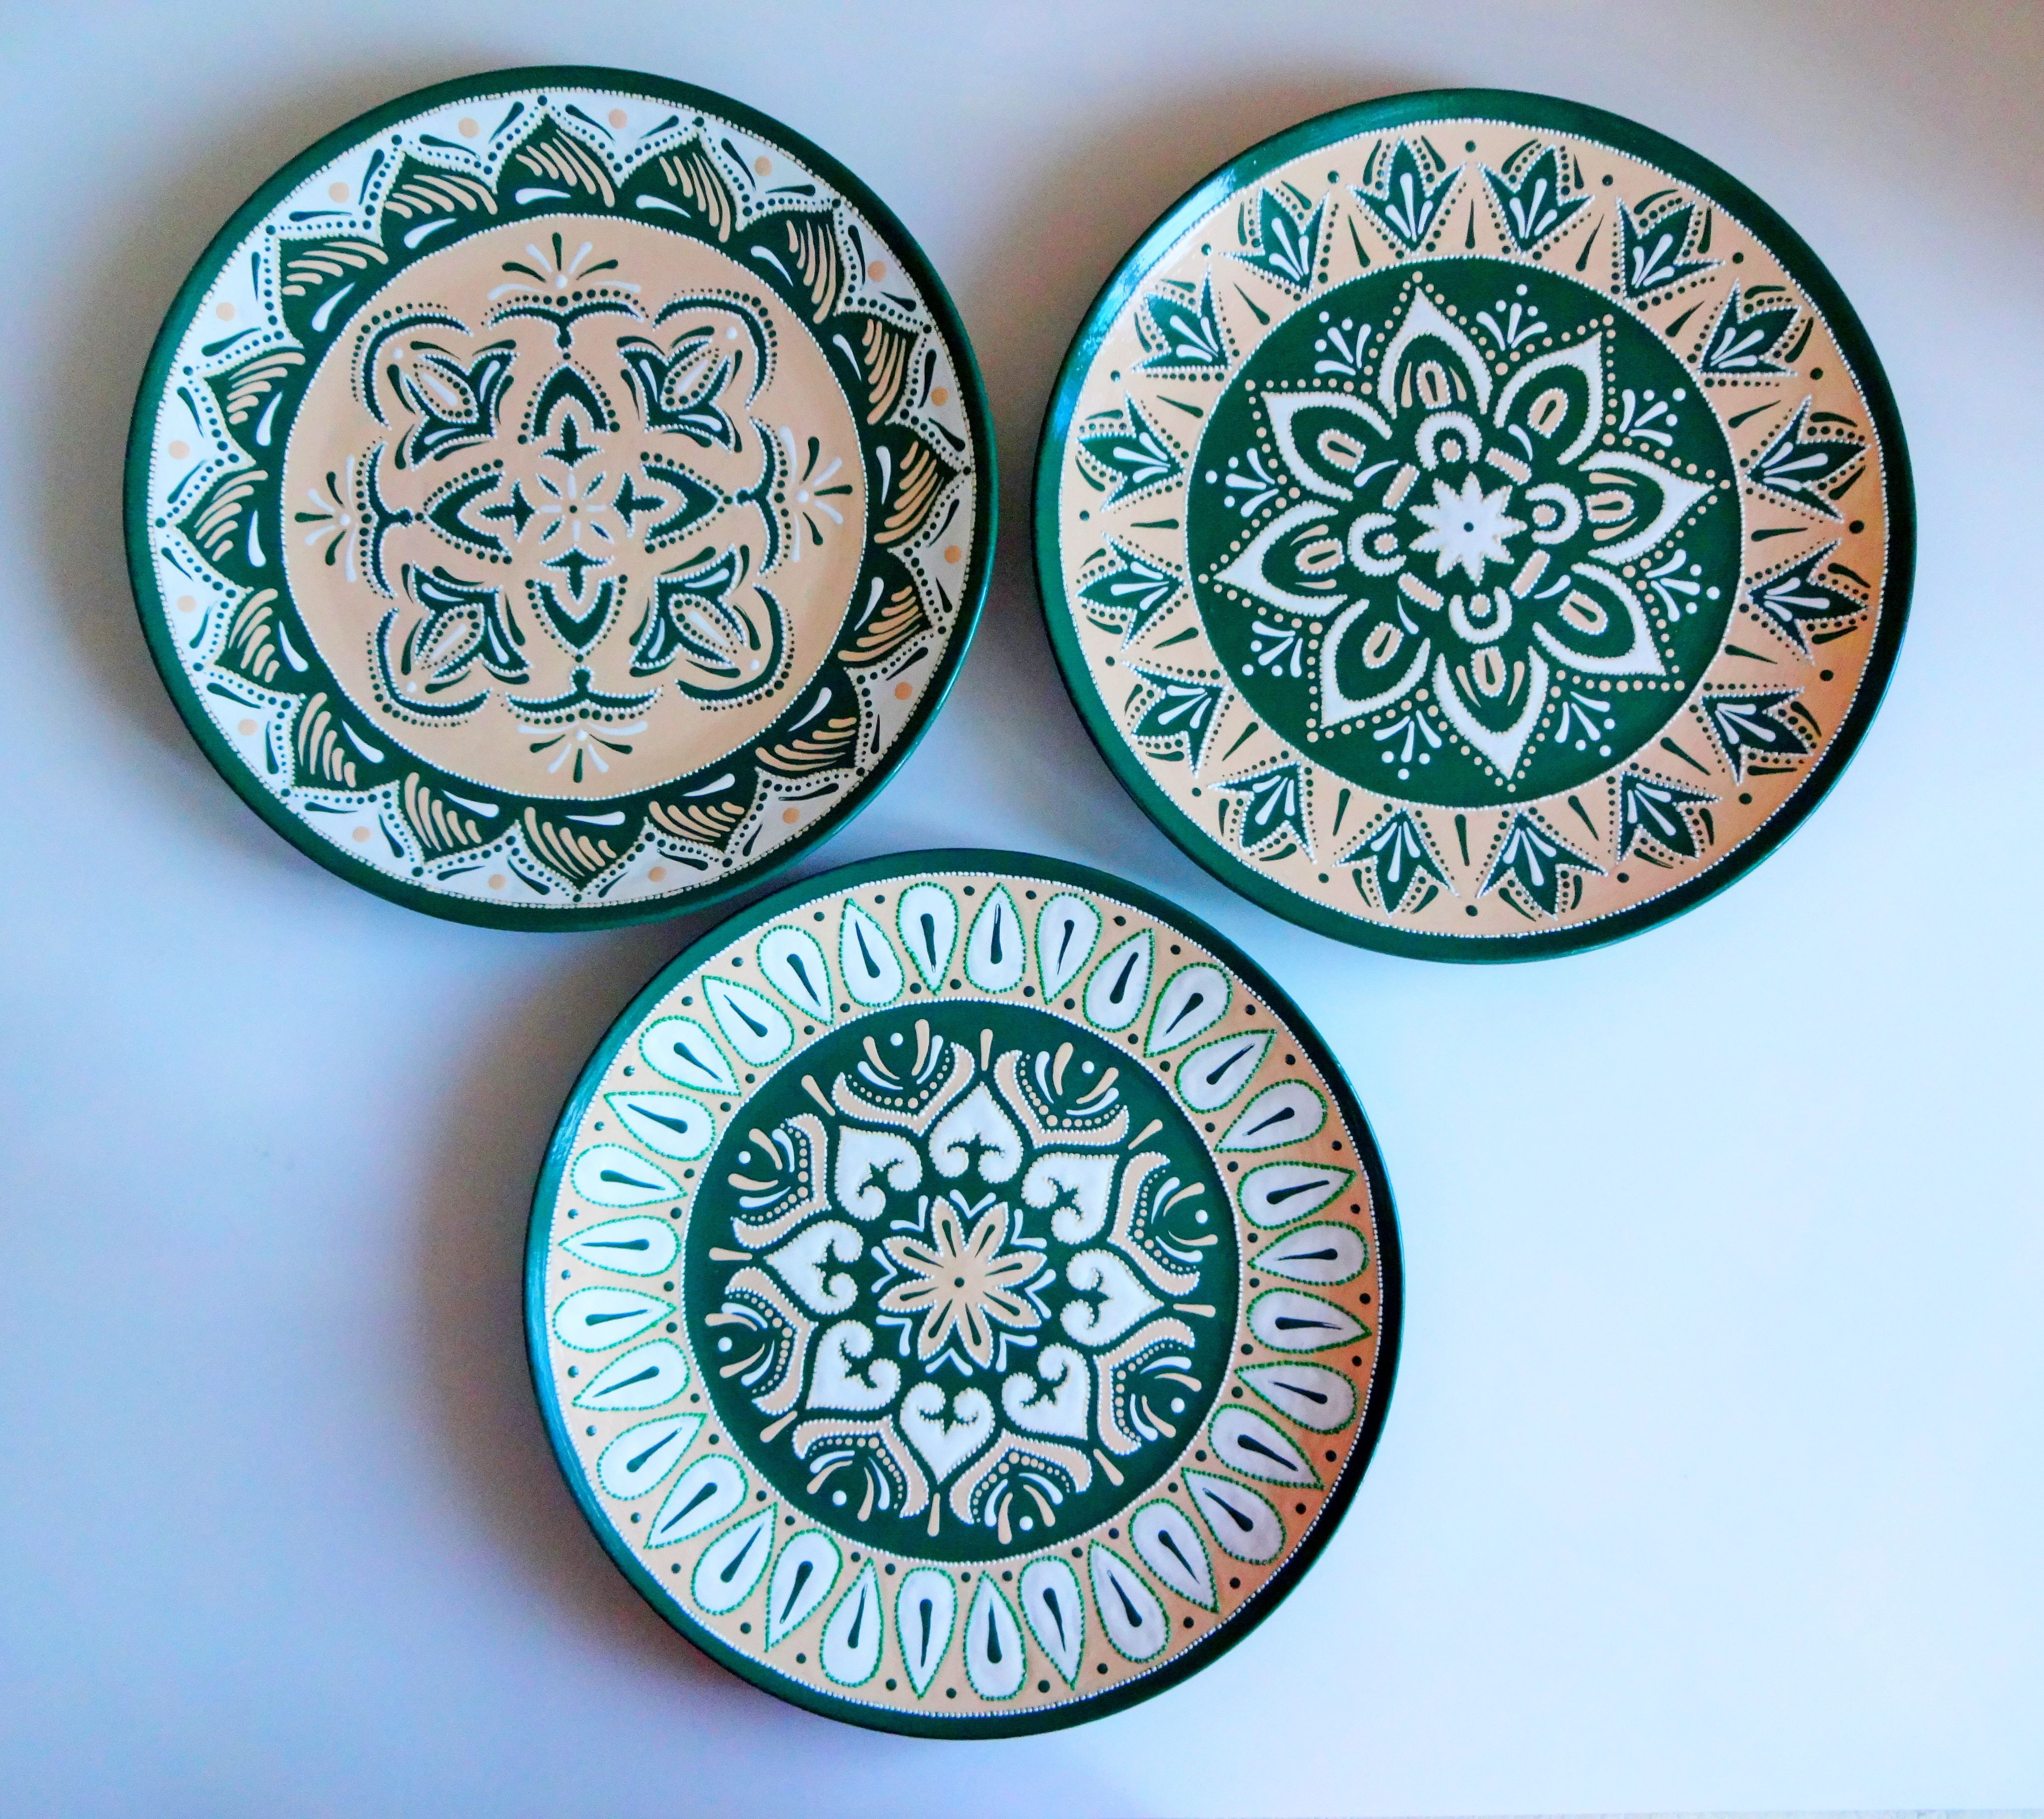 Set Of Decorative Plates For Hanging Colorful Plates Majolica Etsy In 2021 Hand Painted Plates Decorative Plates Painted Plates